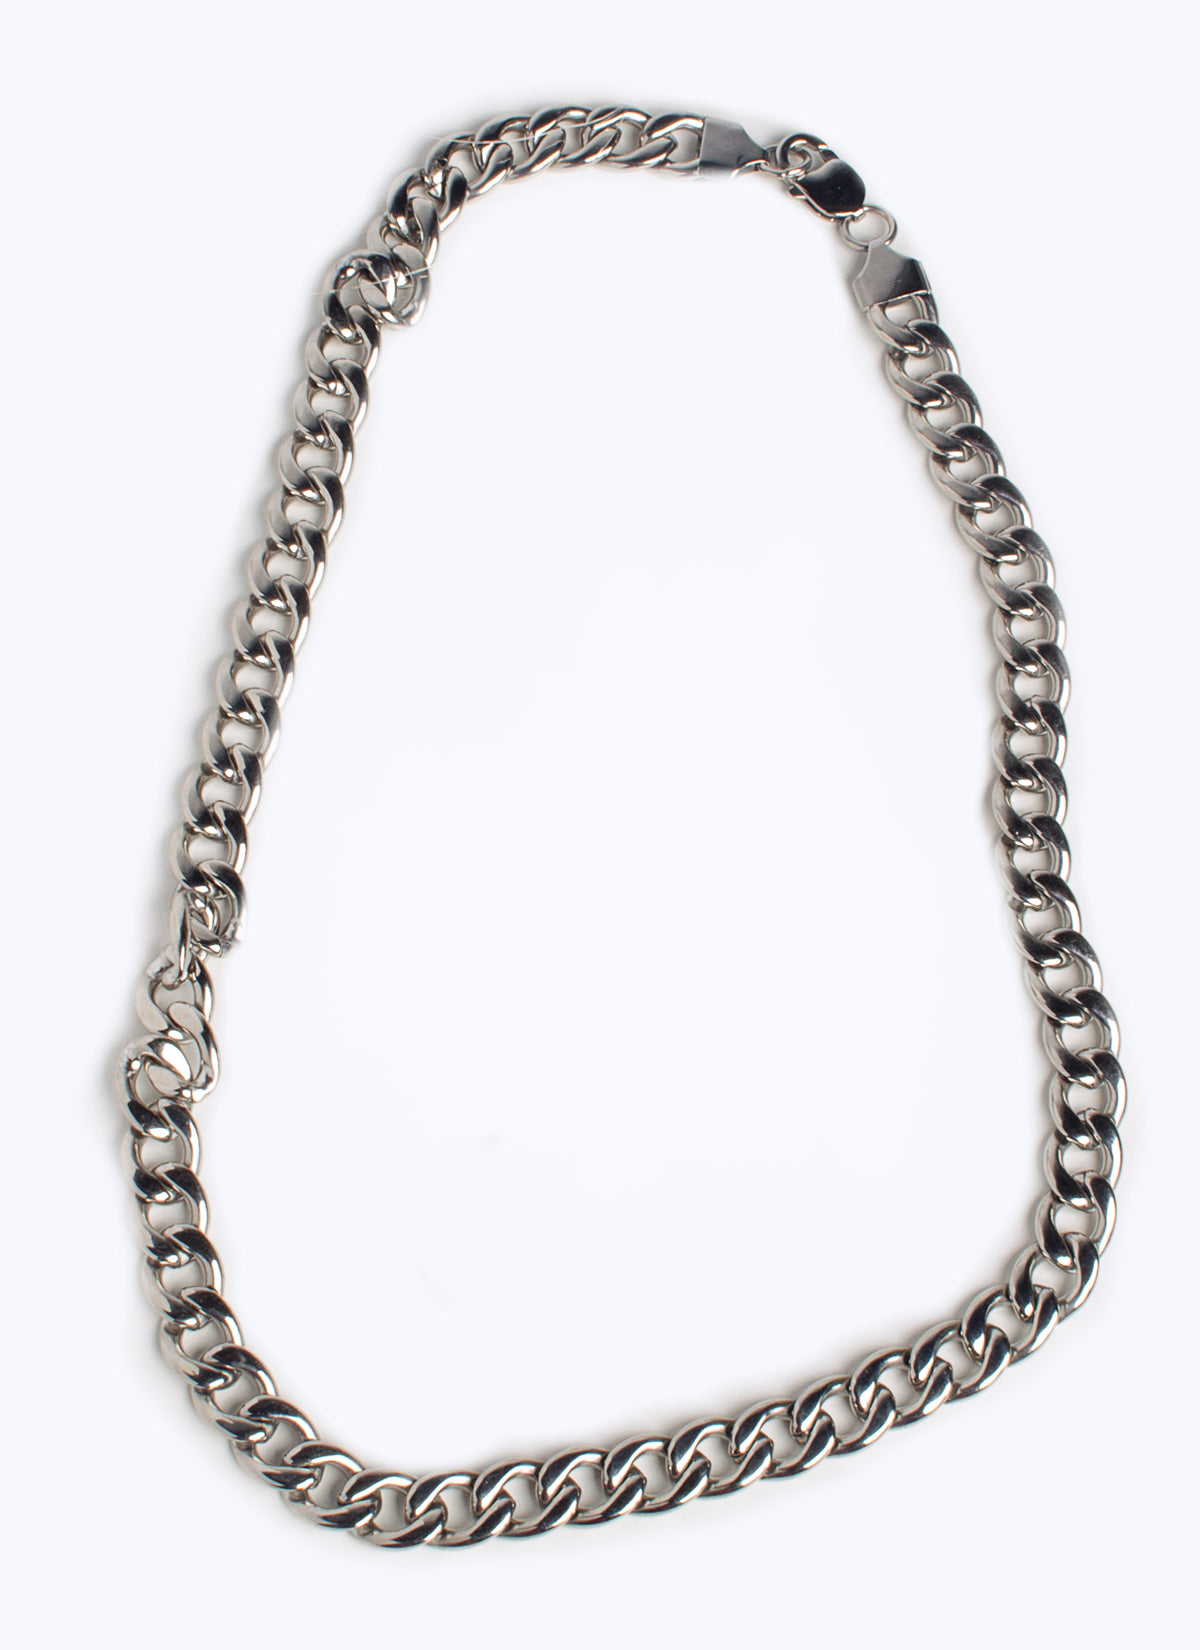 Unisex Silver CHAIN NECKLACE - Tarnish free - ebrook lael